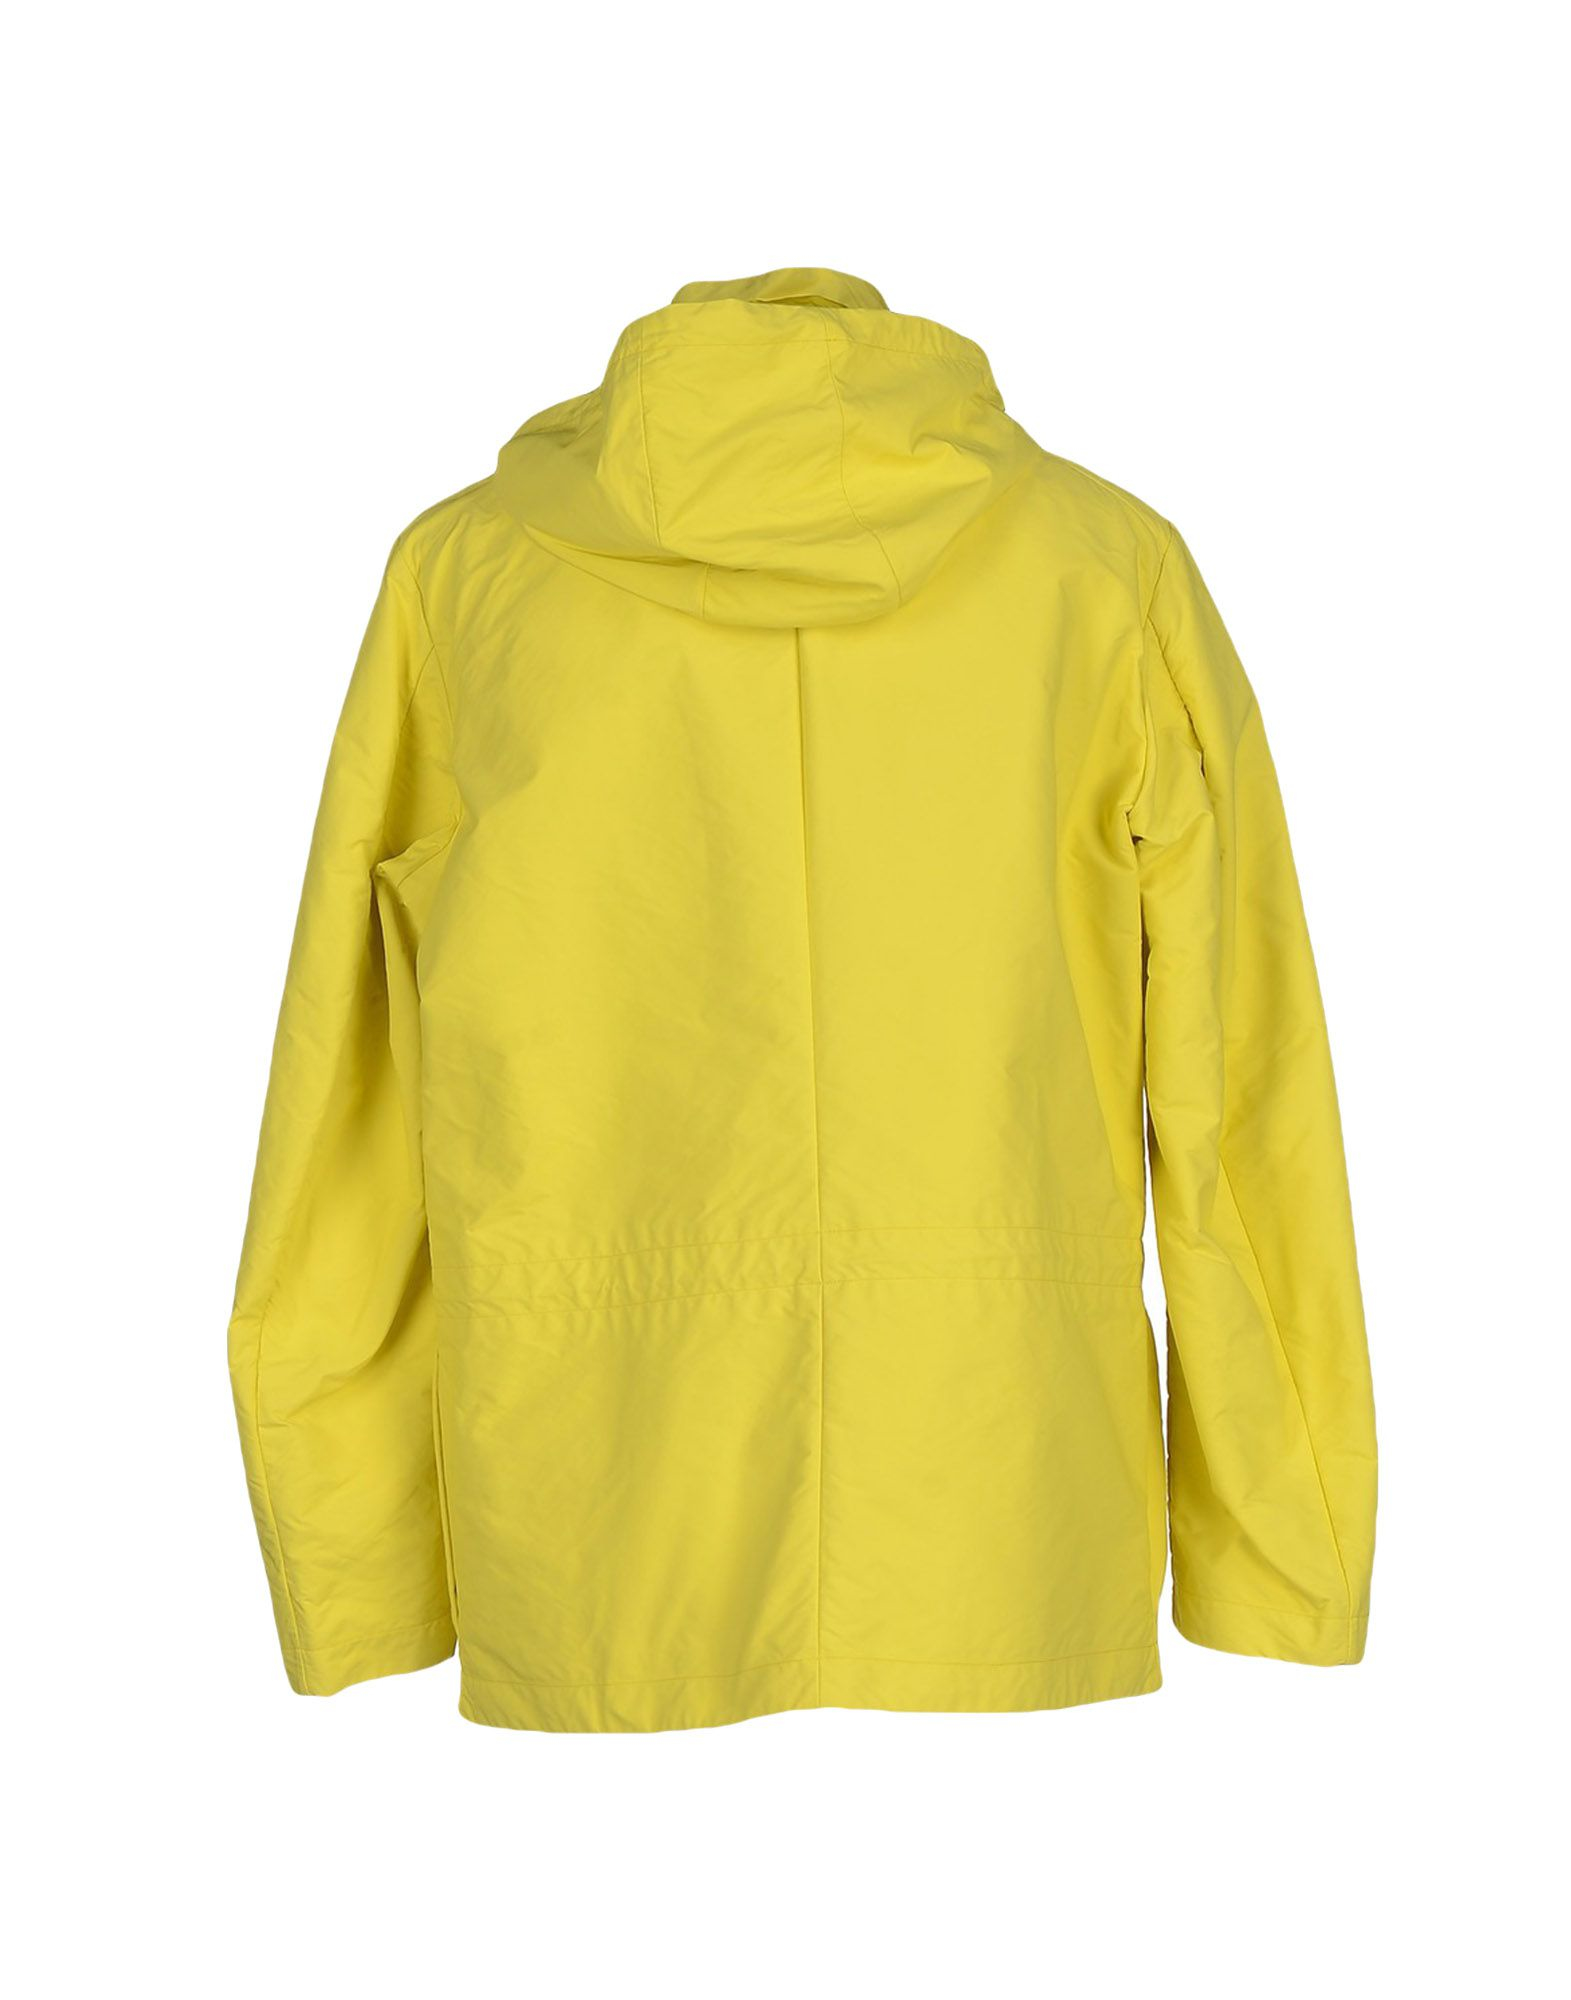 yellow jacket single men Find great deals on ebay for mens yellow jacket shop with confidence.